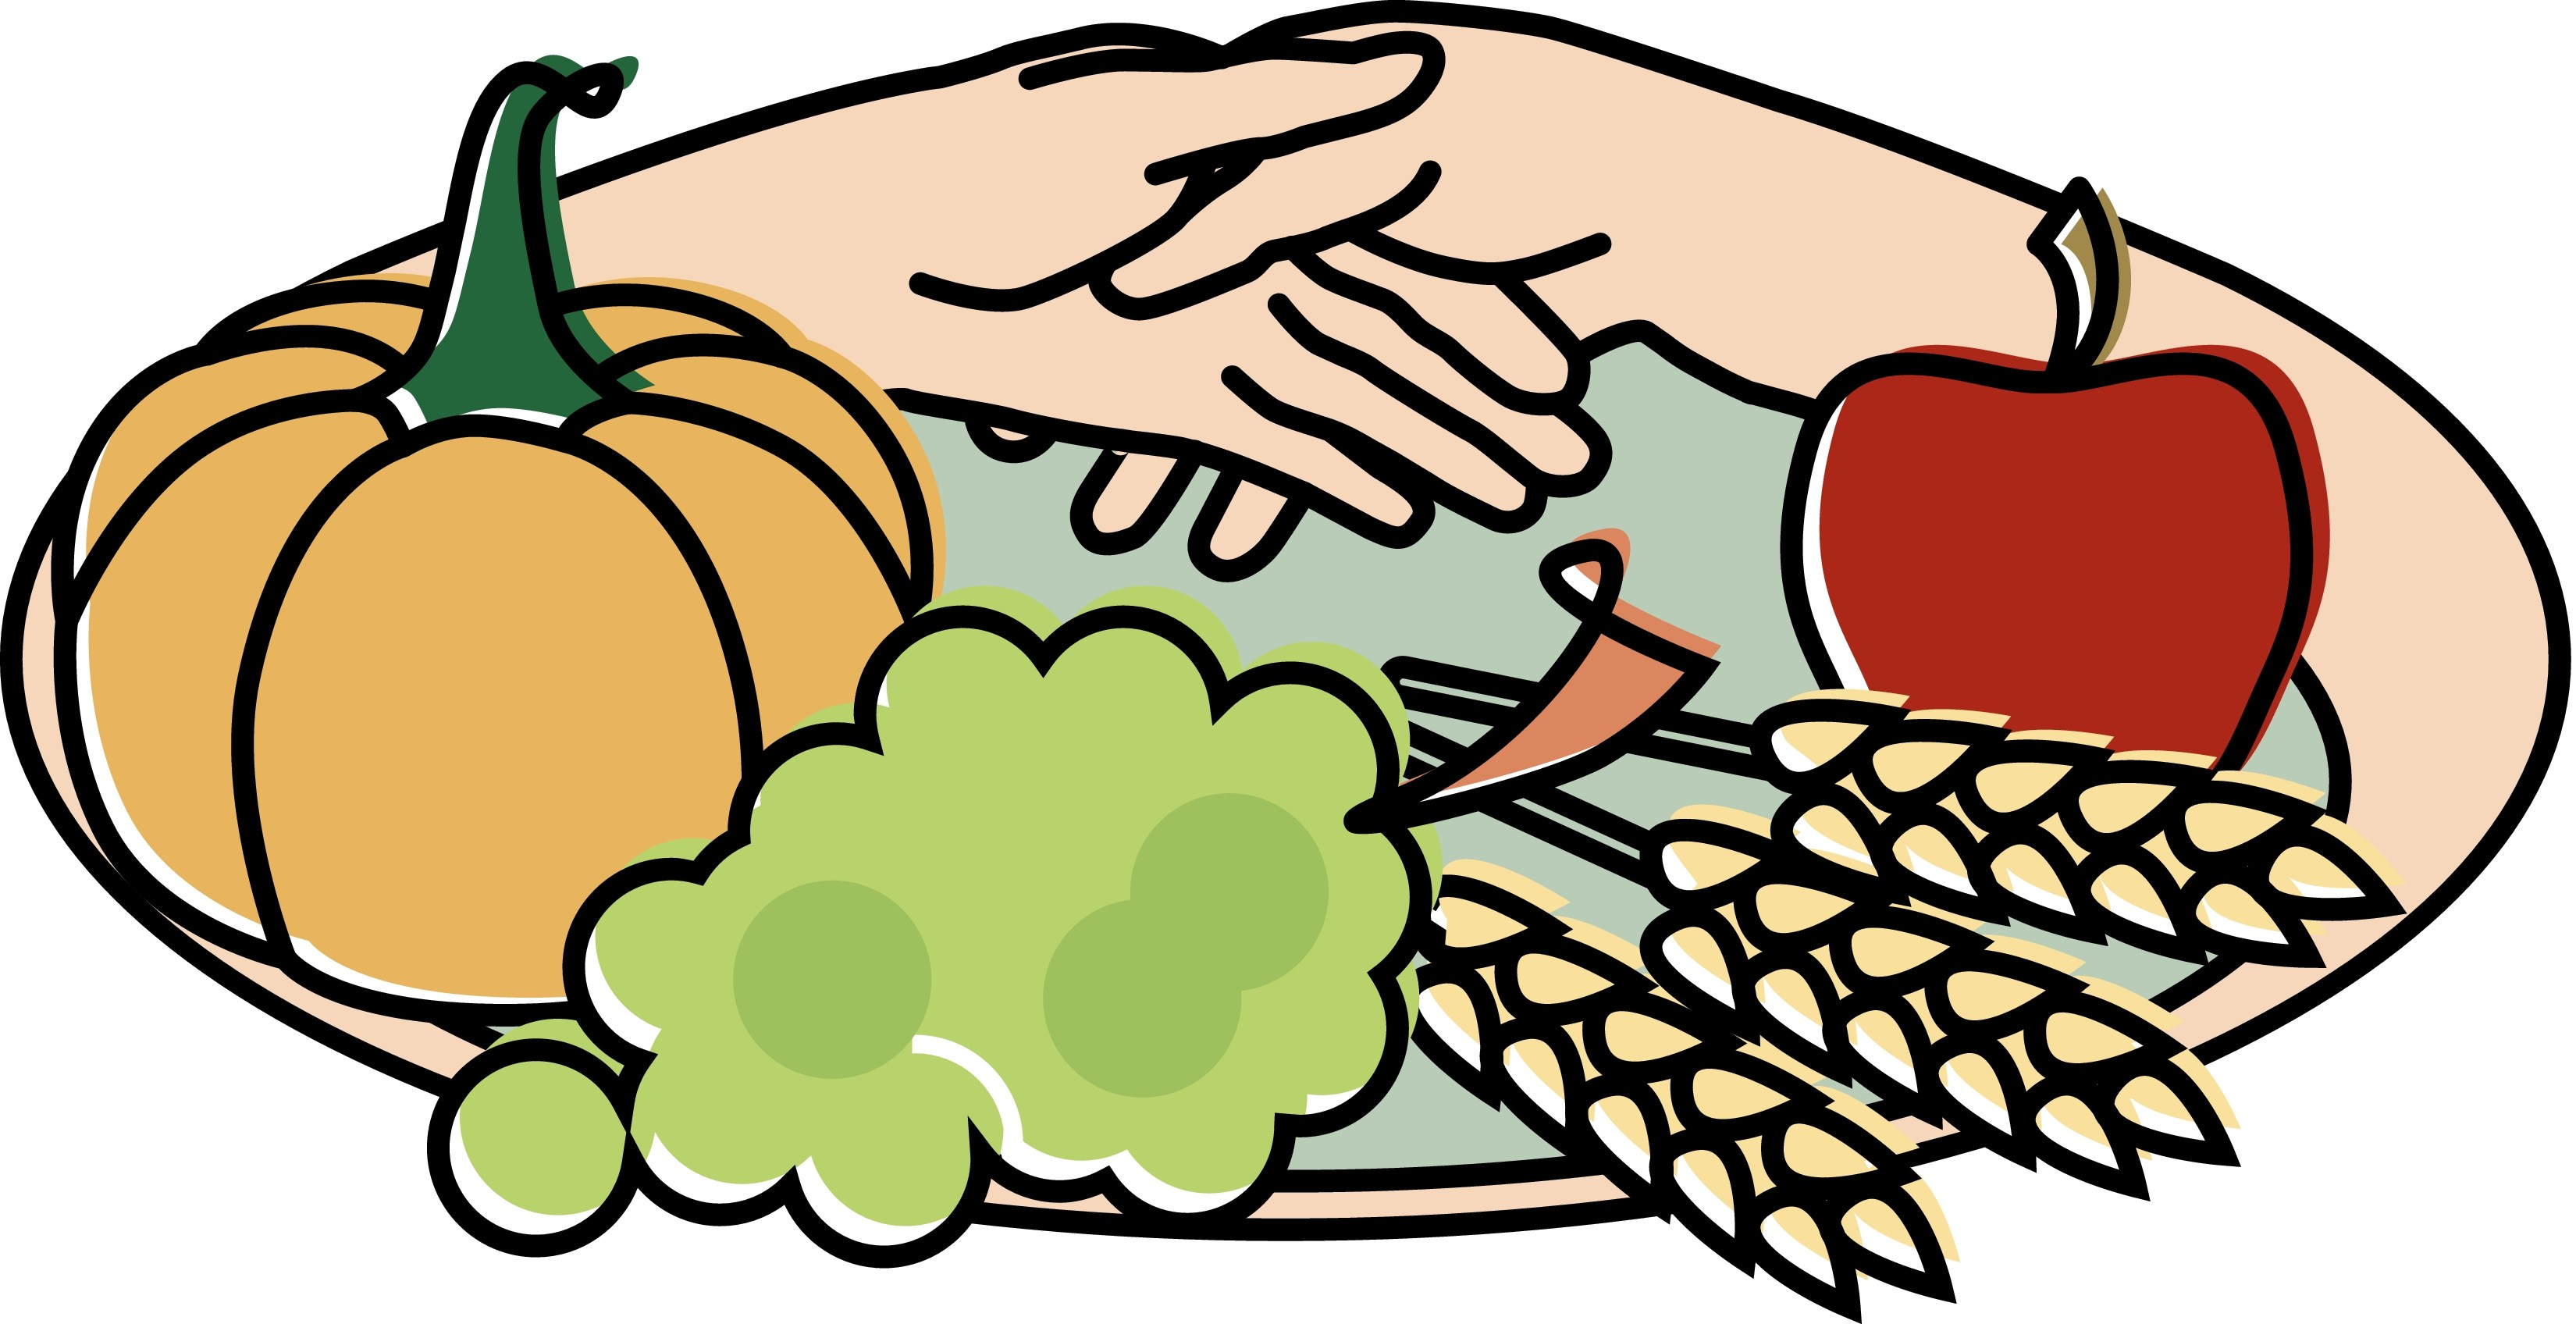 Harvest dinner clipart 6 » Clipart Portal.